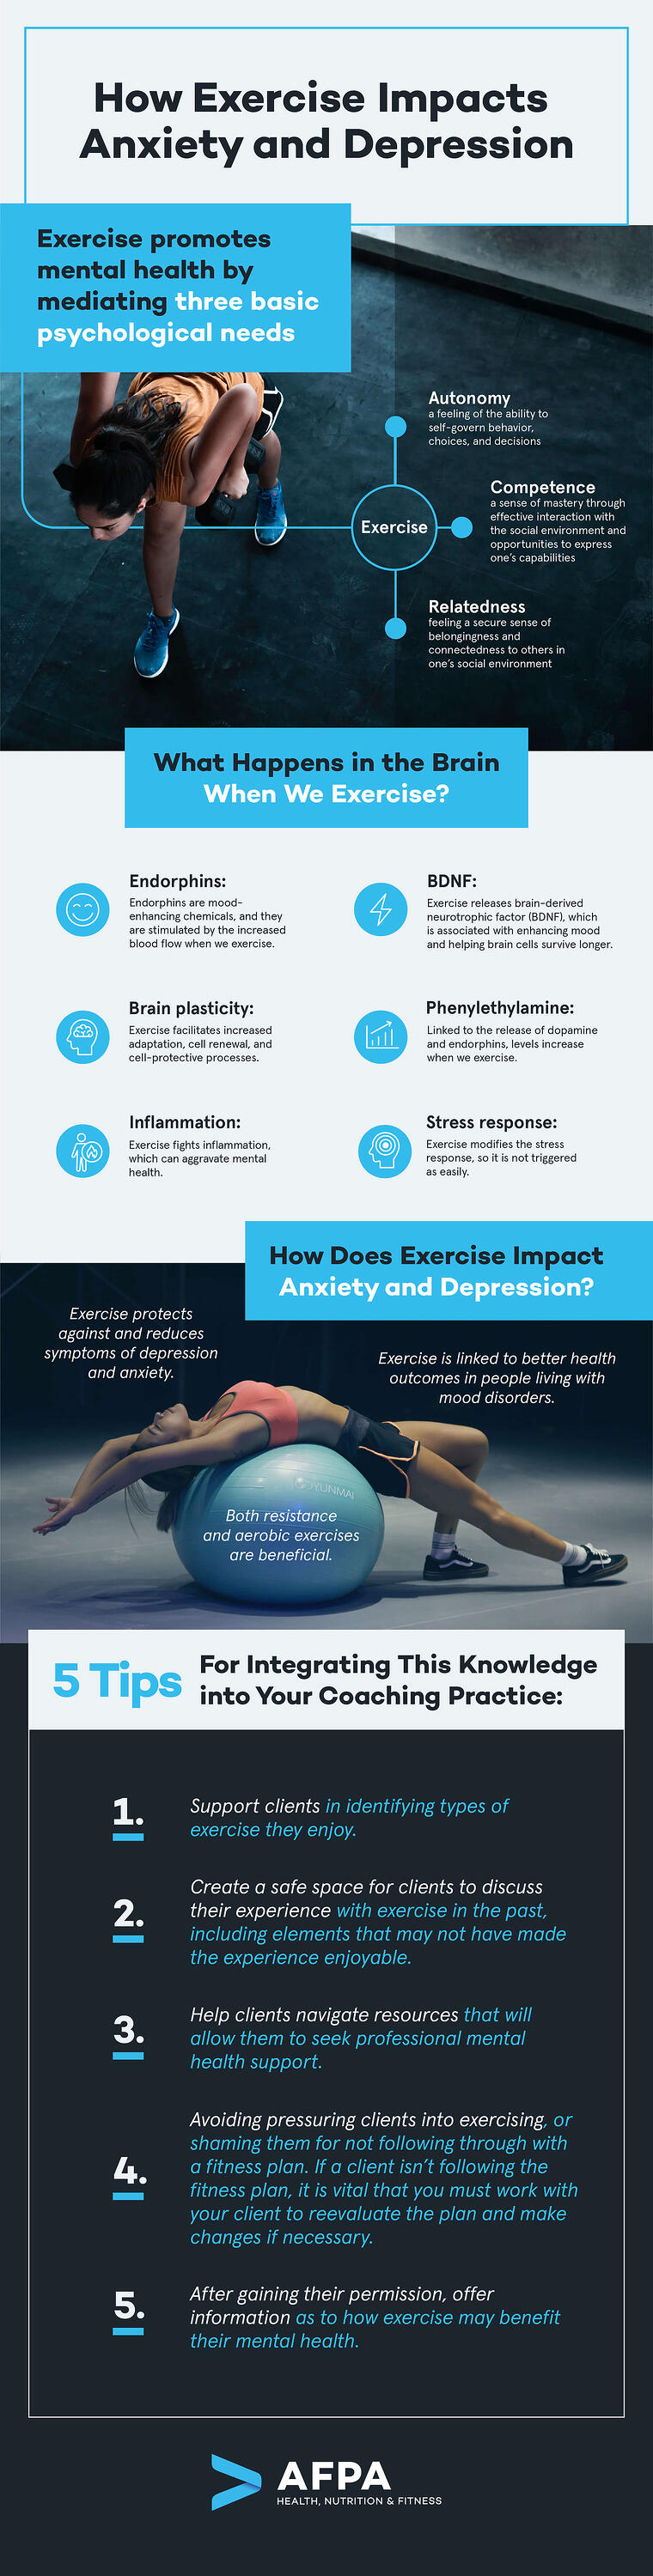 How exercise Impacts Anxiety and Depression